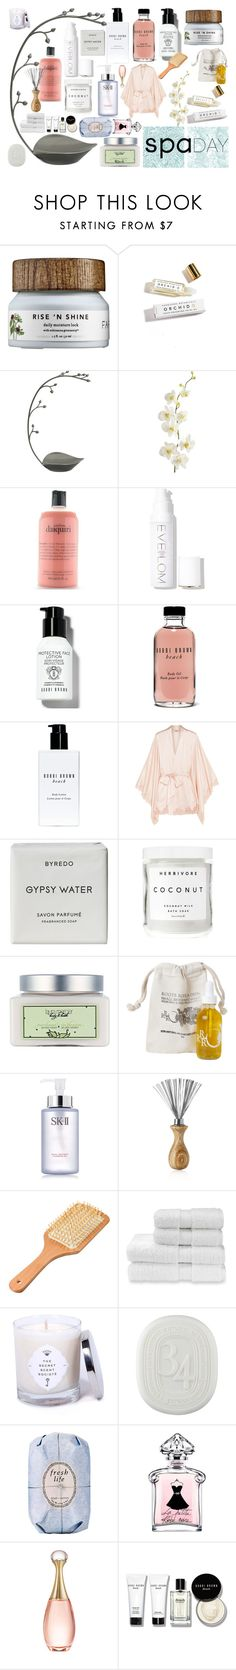 """""""Because We All Need A Little Spa Day..."""" by lovefinn27 ❤ liked on Polyvore featuring Herbivore, Umbra, Pier 1 Imports, philosophy, Eve Lom, Bobbi Brown Cosmetics, Agent Provocateur, Byredo, Laura Mercier and Roots Rose Radish"""